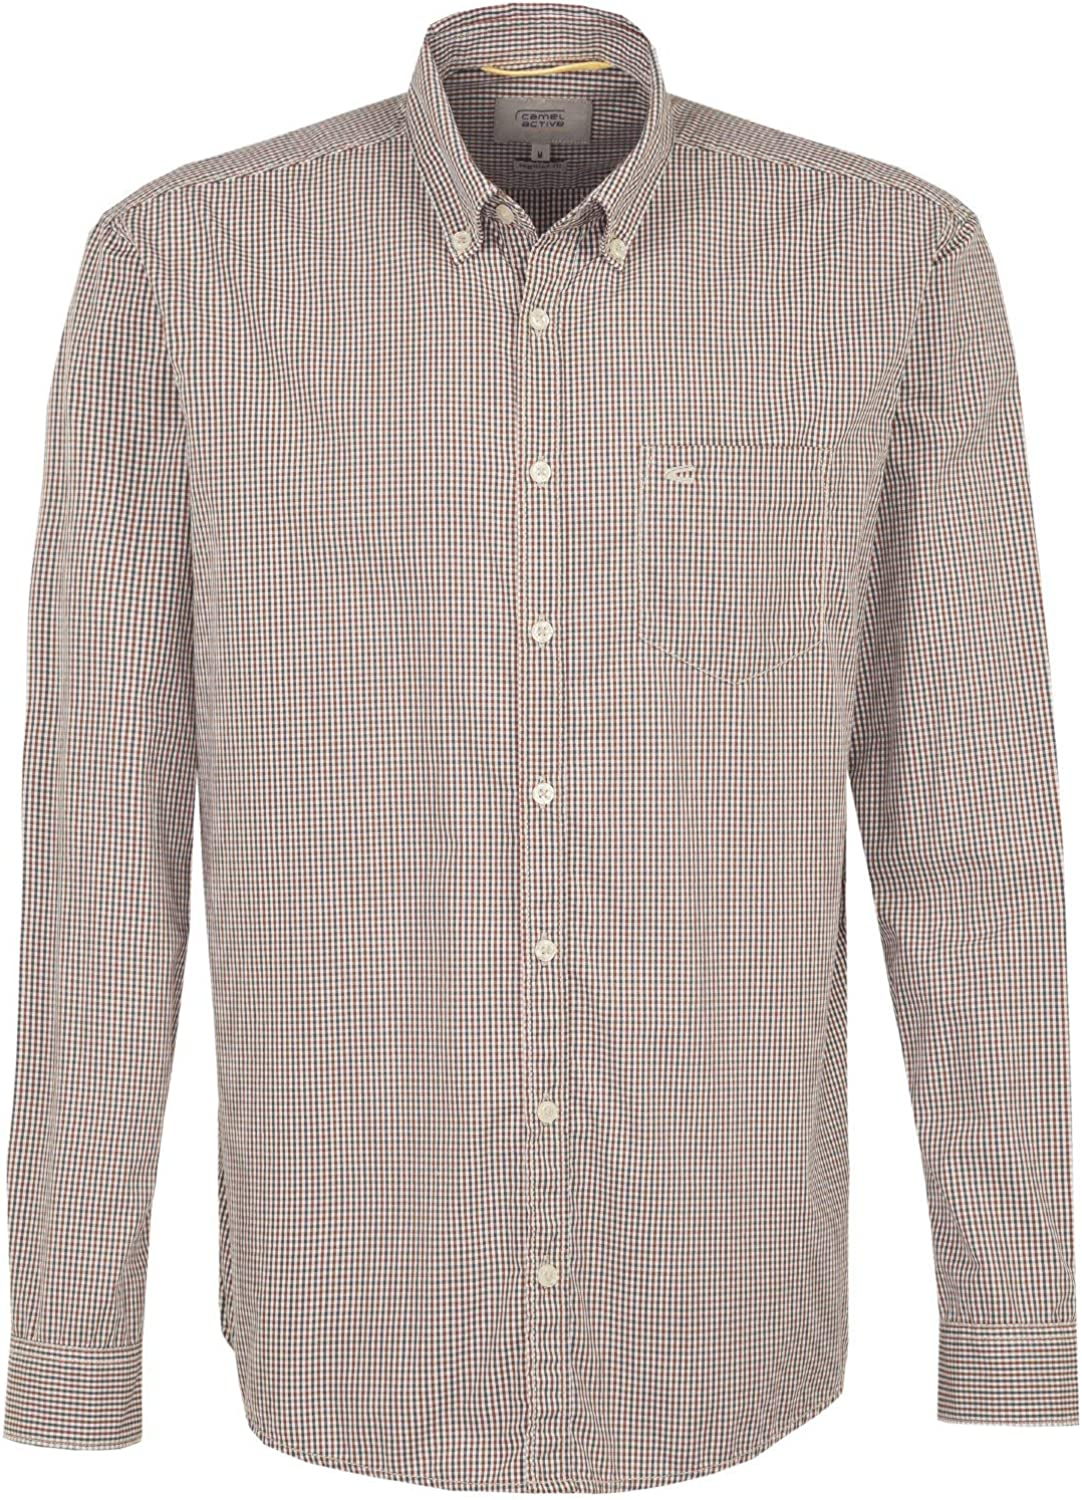 Camel active Herren Casual-Hemd Regular fit Langarm Button-Down-Kragen B07HPFG2CS  Britisches Temperament